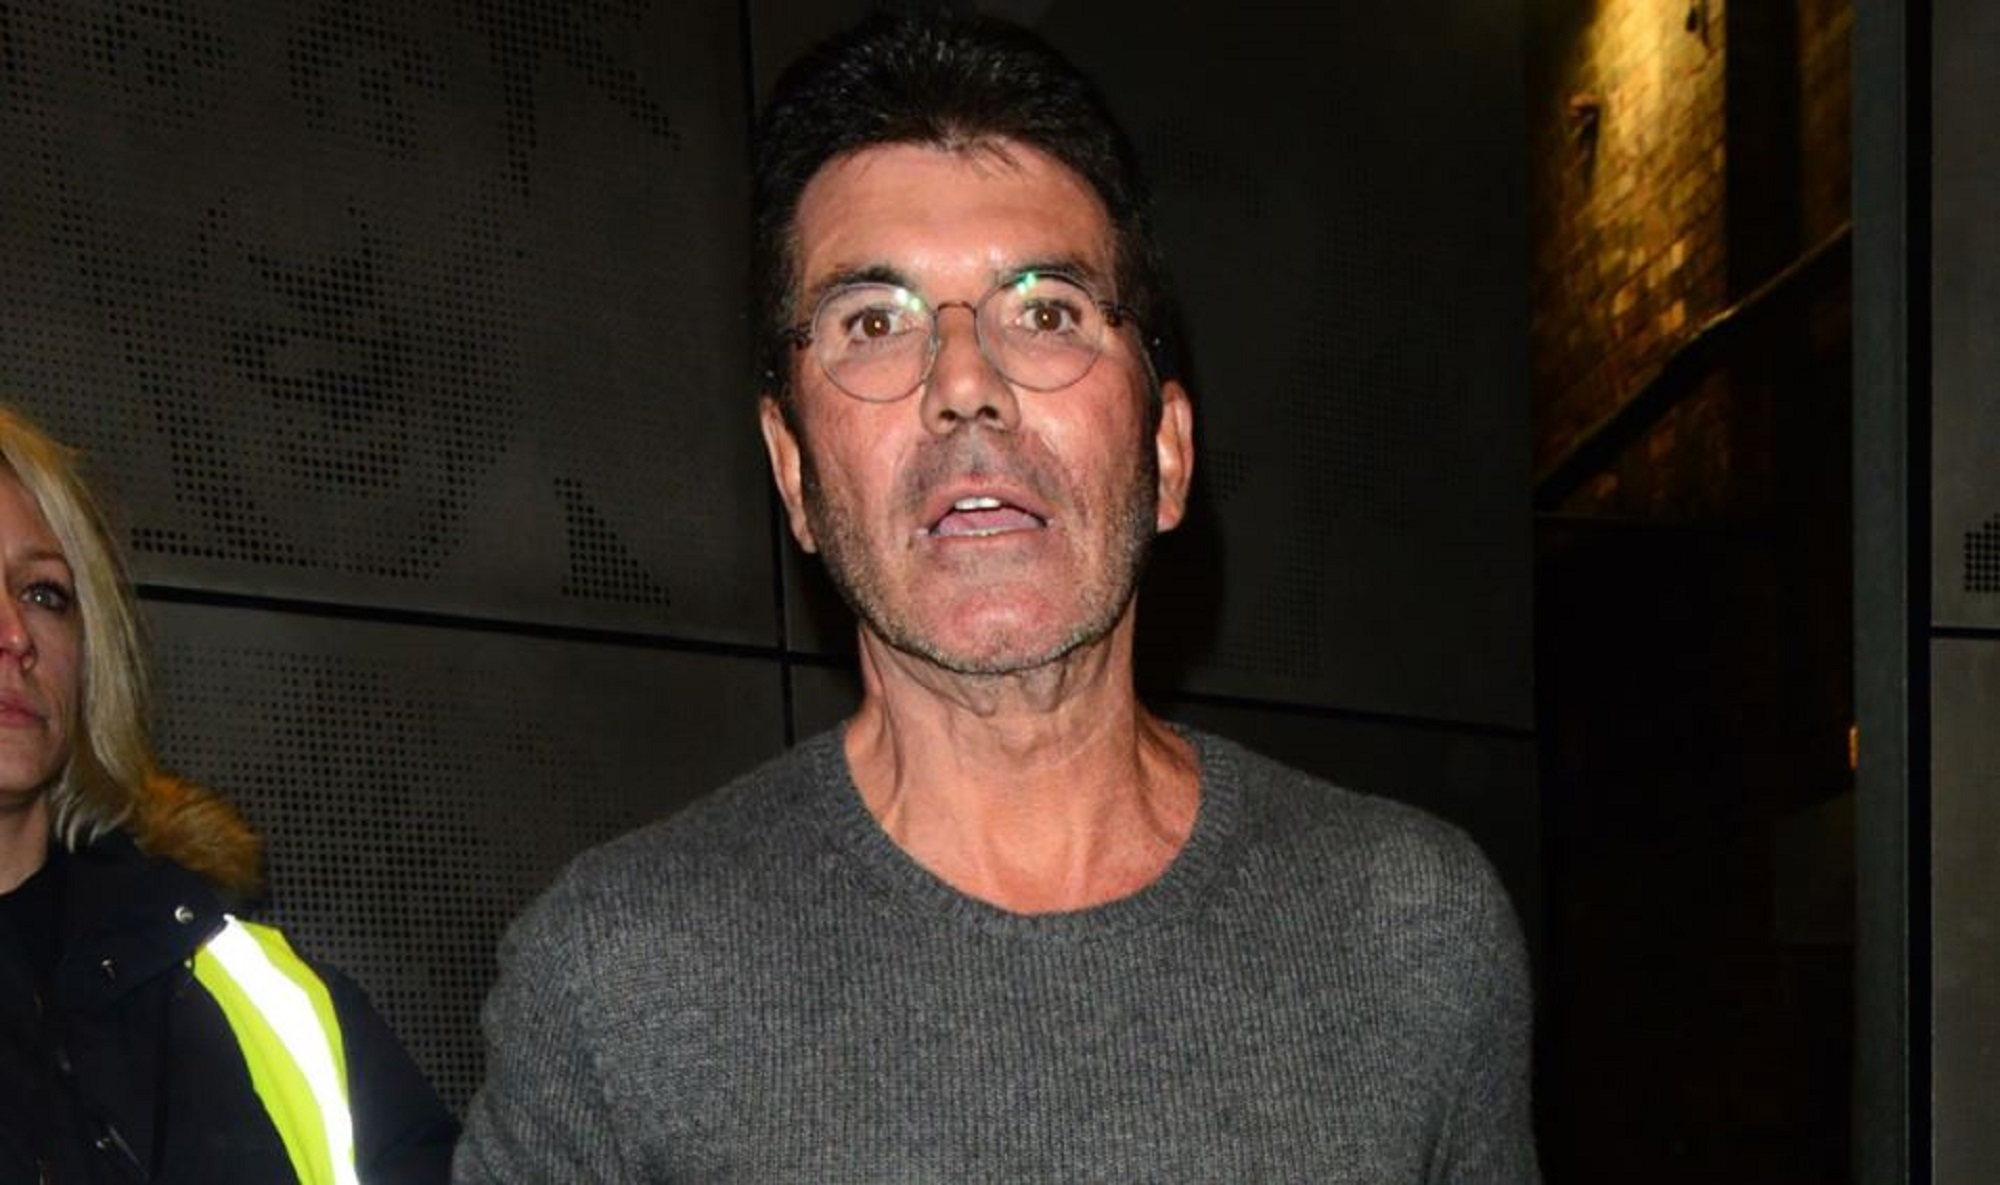 Fans worry Simon Cowell is 'wasting away' in latest Instagram post